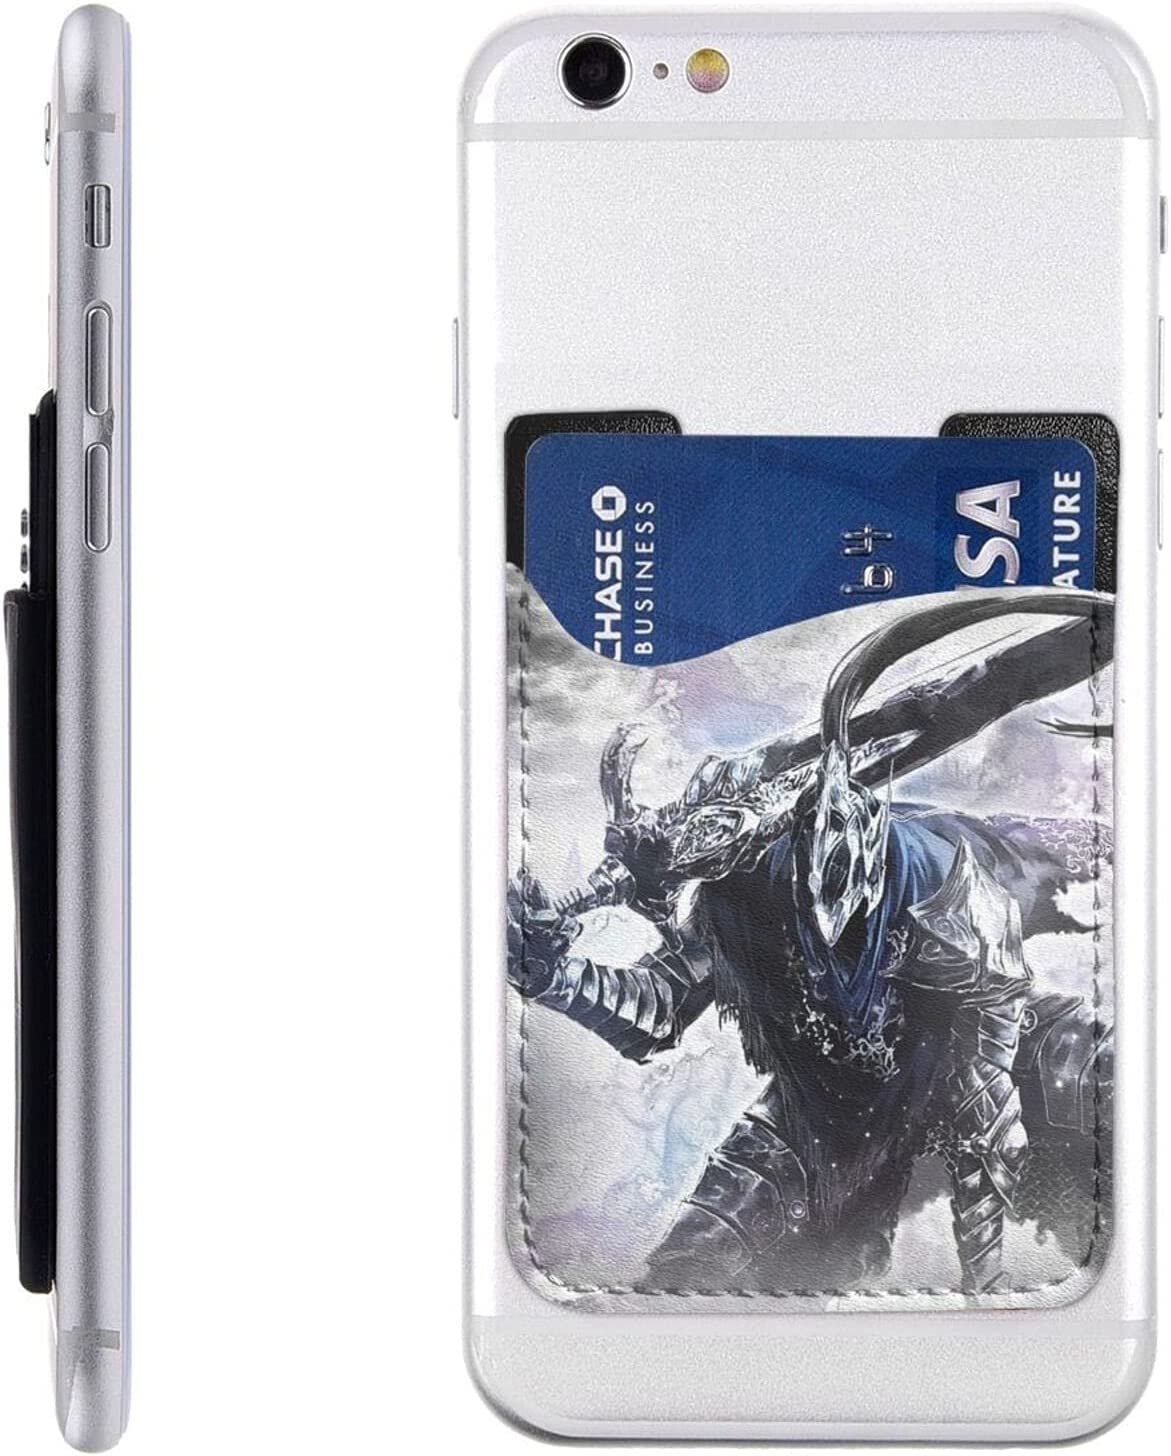 Mobile Phone Card Holder Adhesive Challenge the lowest price Walle Cell Colorado Springs Mall On Stick